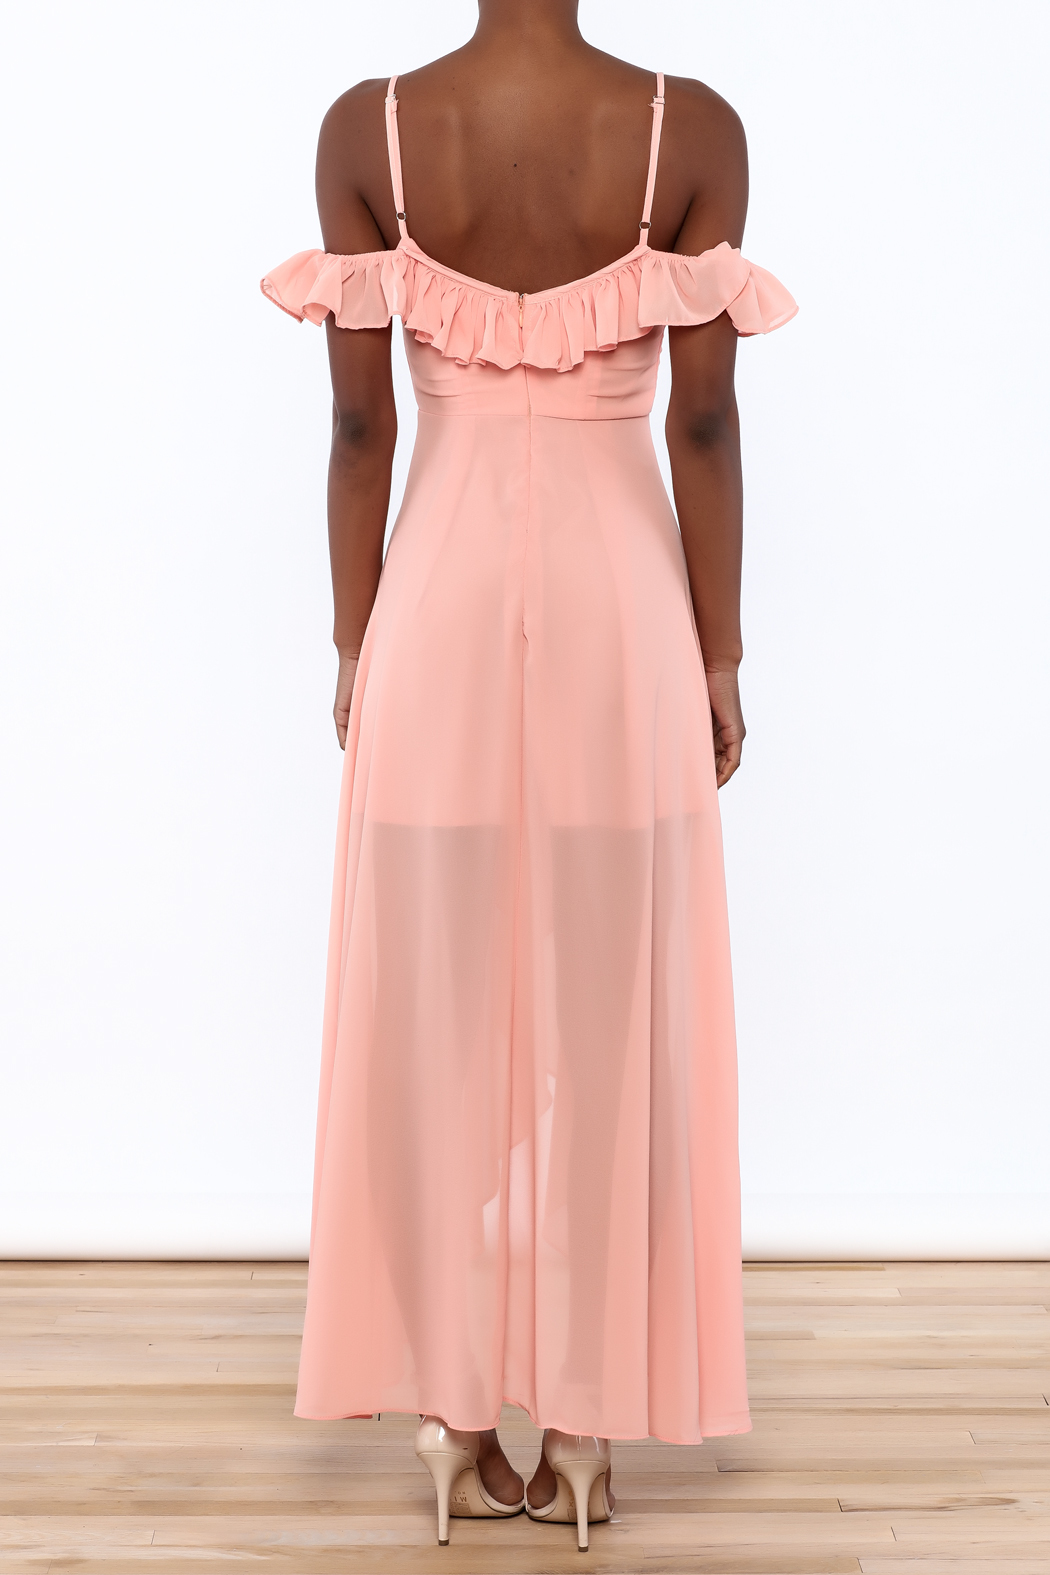 Luxxel Ruffle Maxi Dress From New York City By Dor L Dor